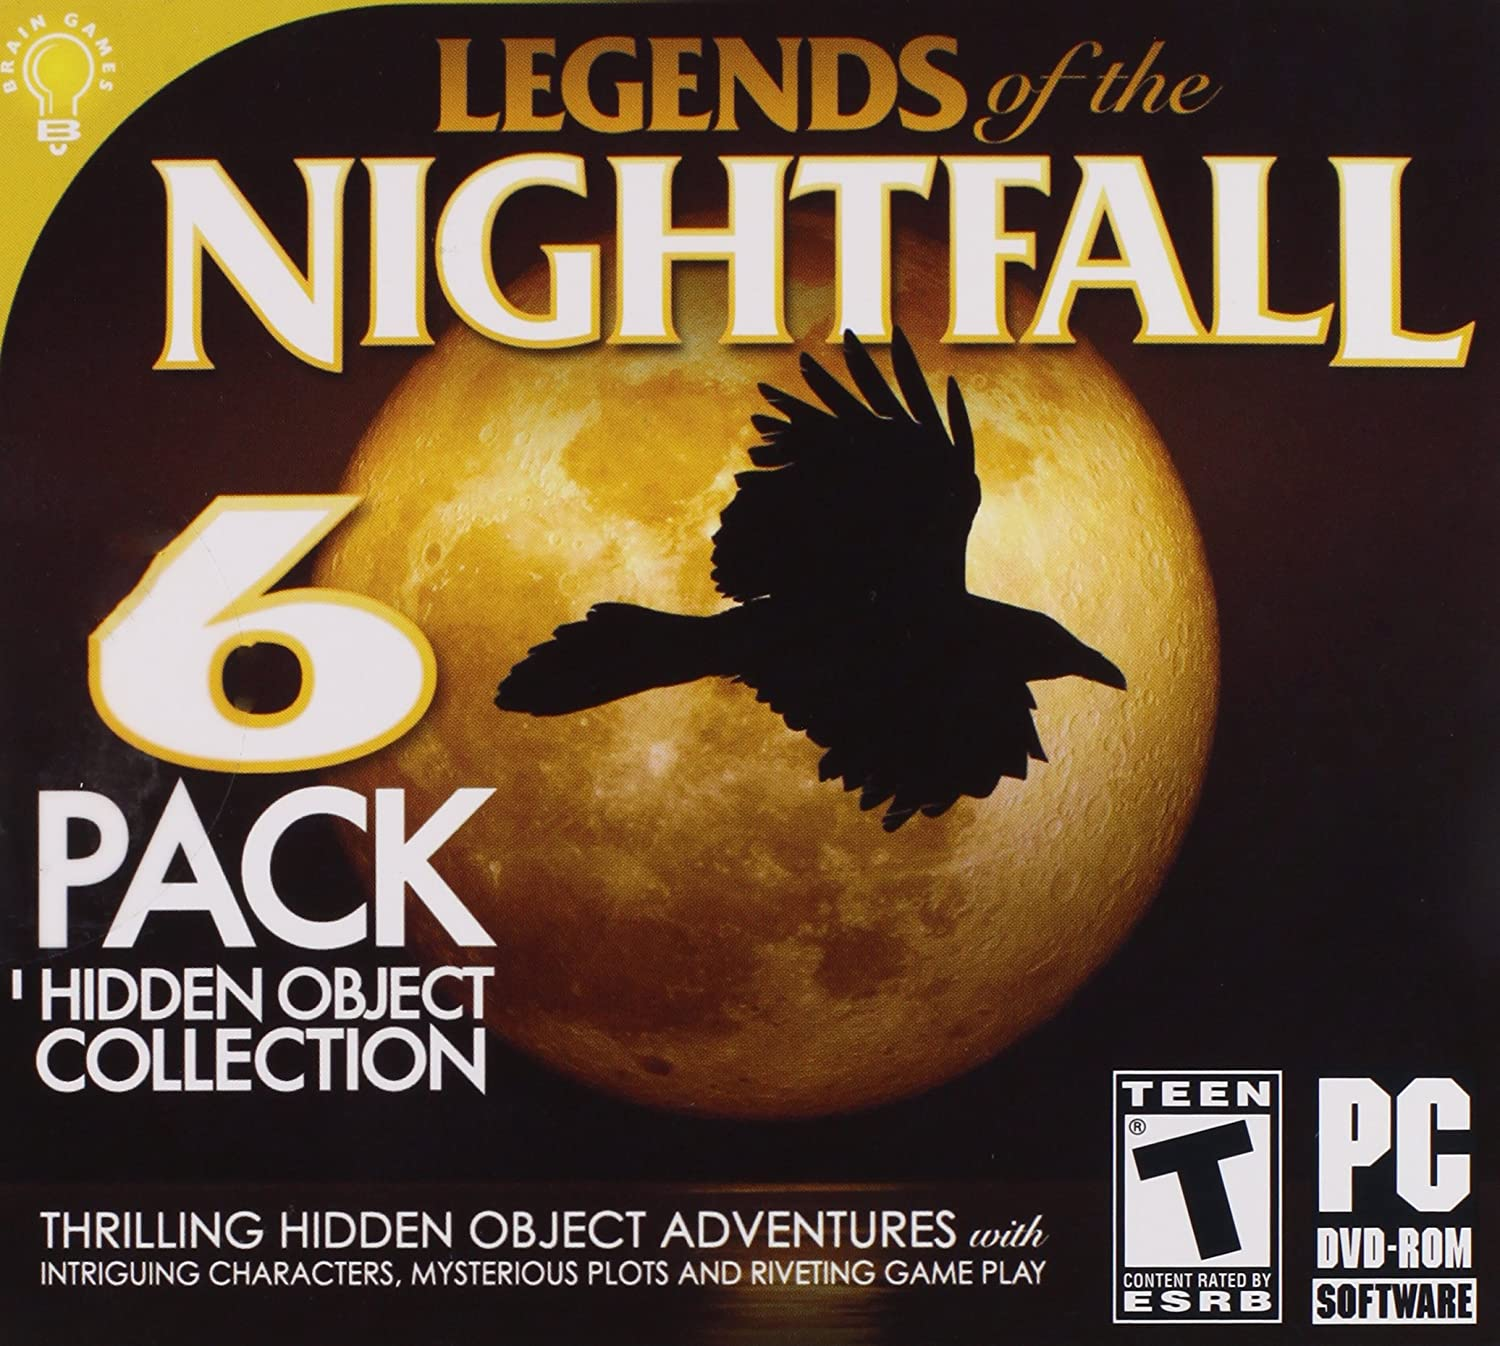 Legends of the Nightfall